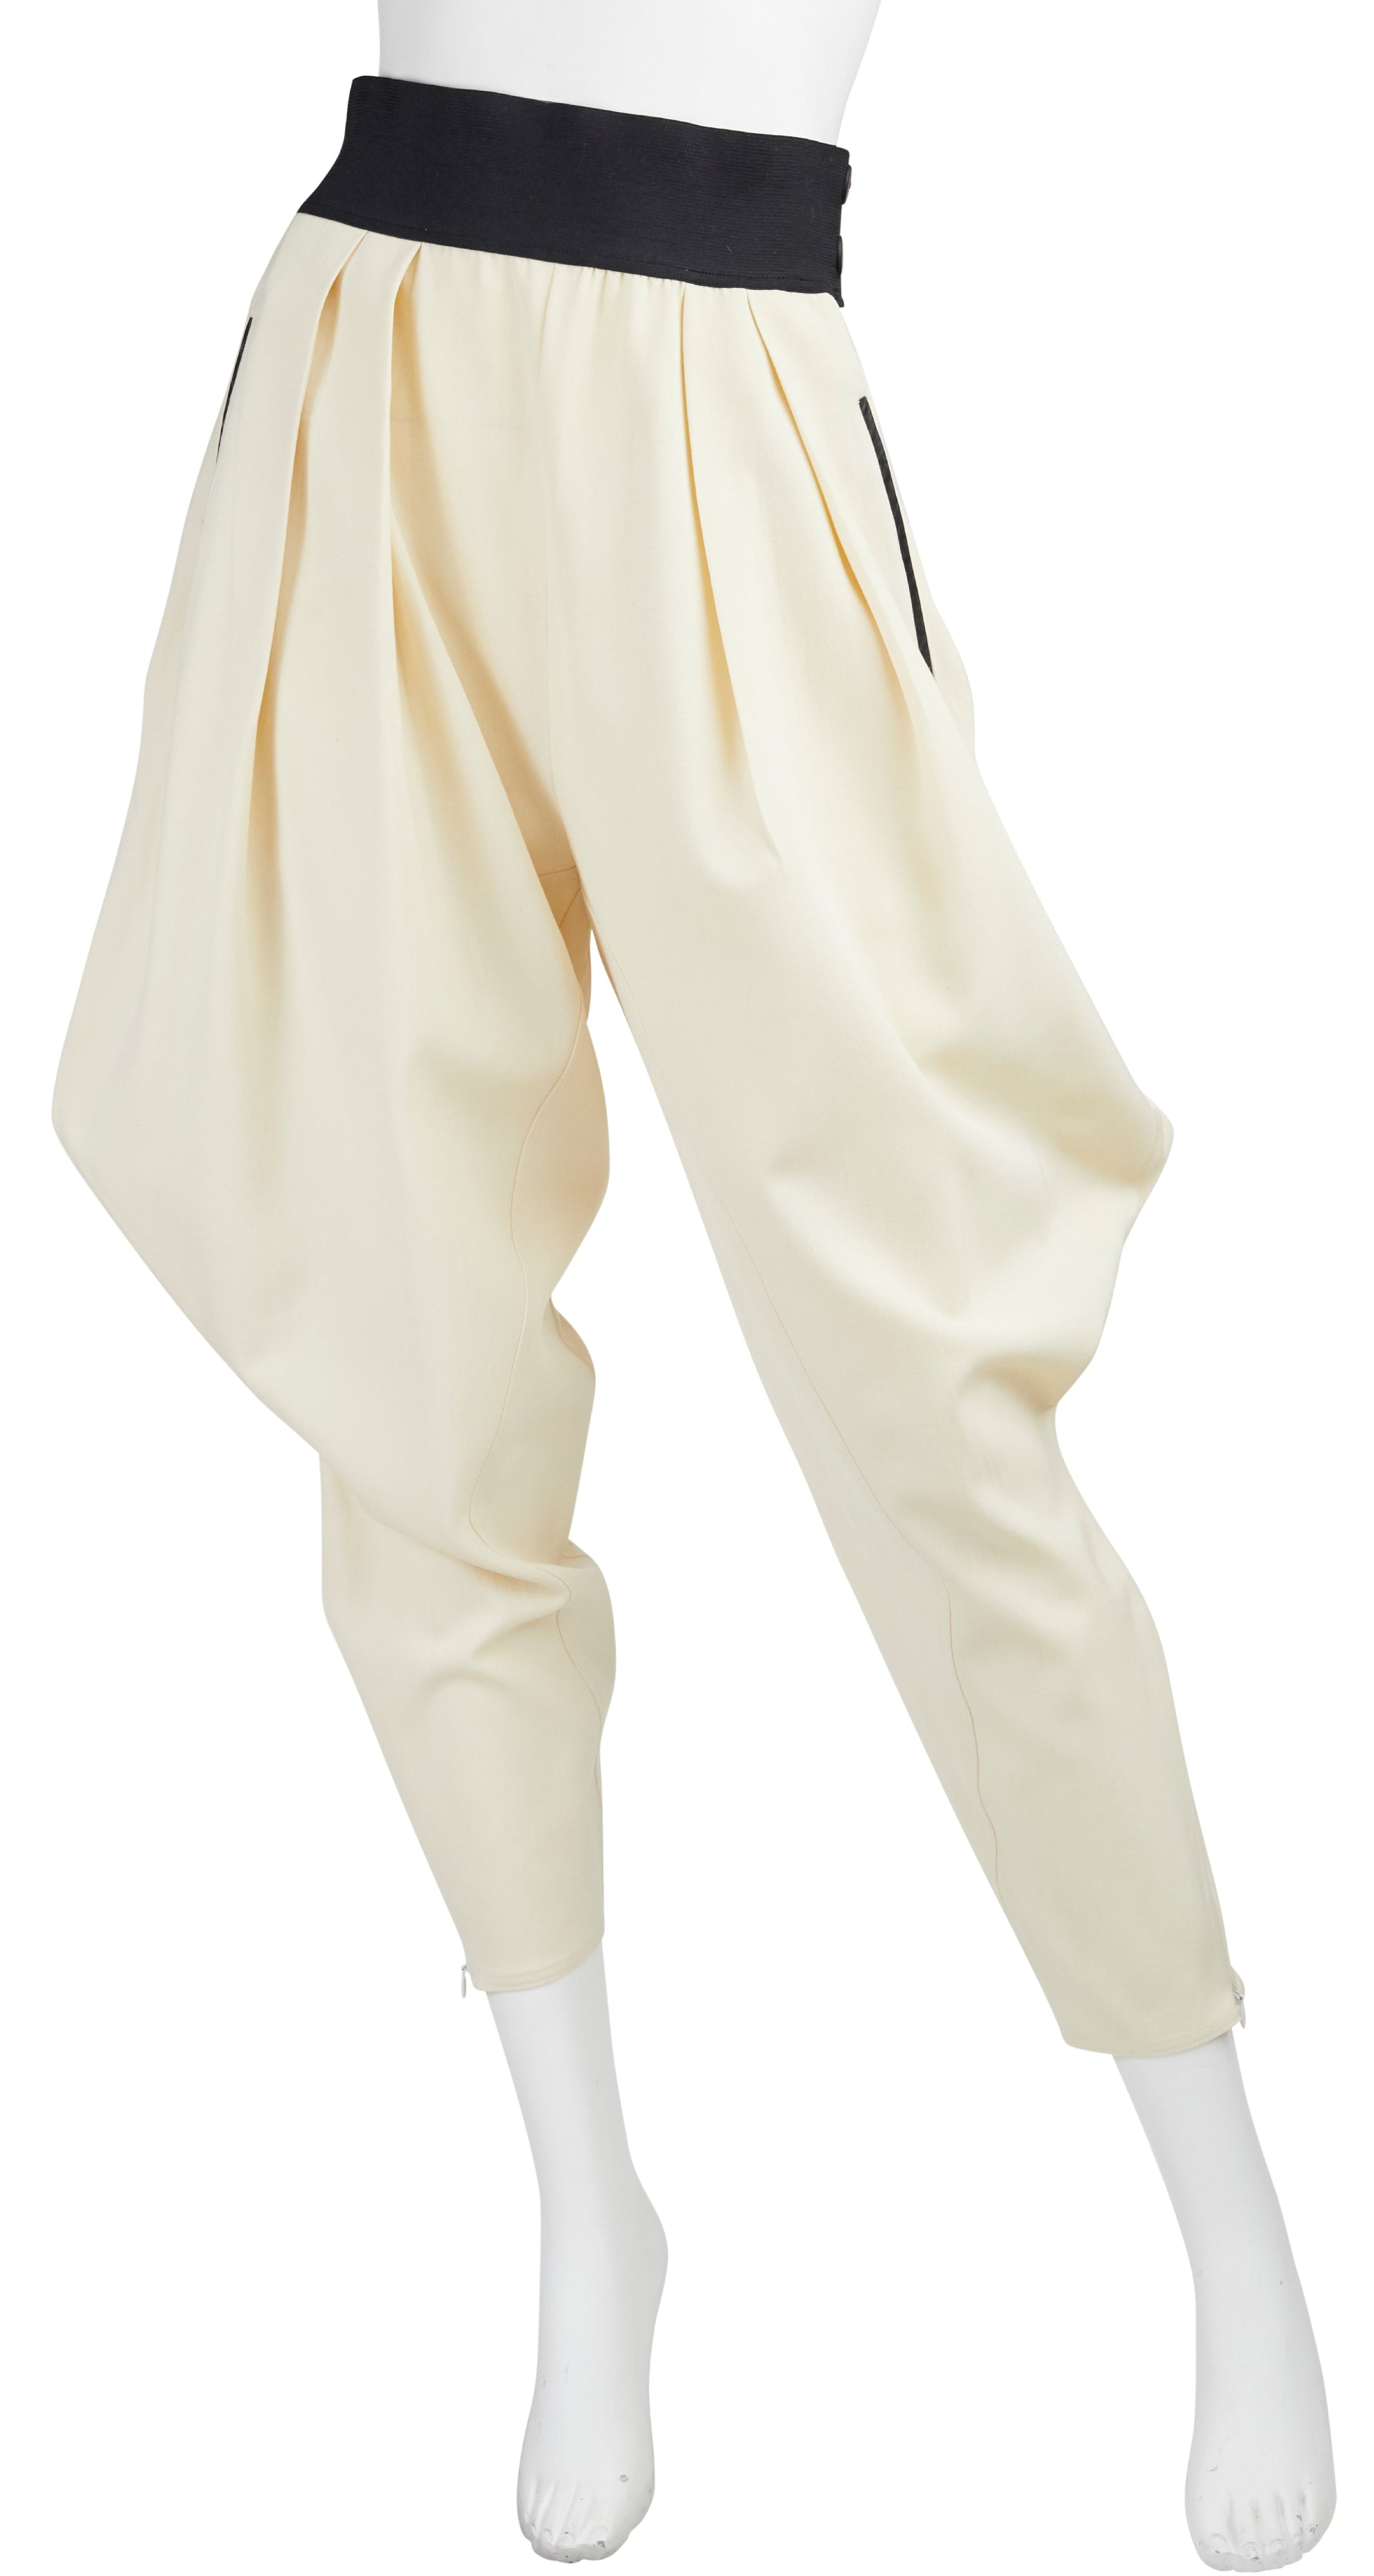 1980s Avant-Garde Cream Wool Riding Pants